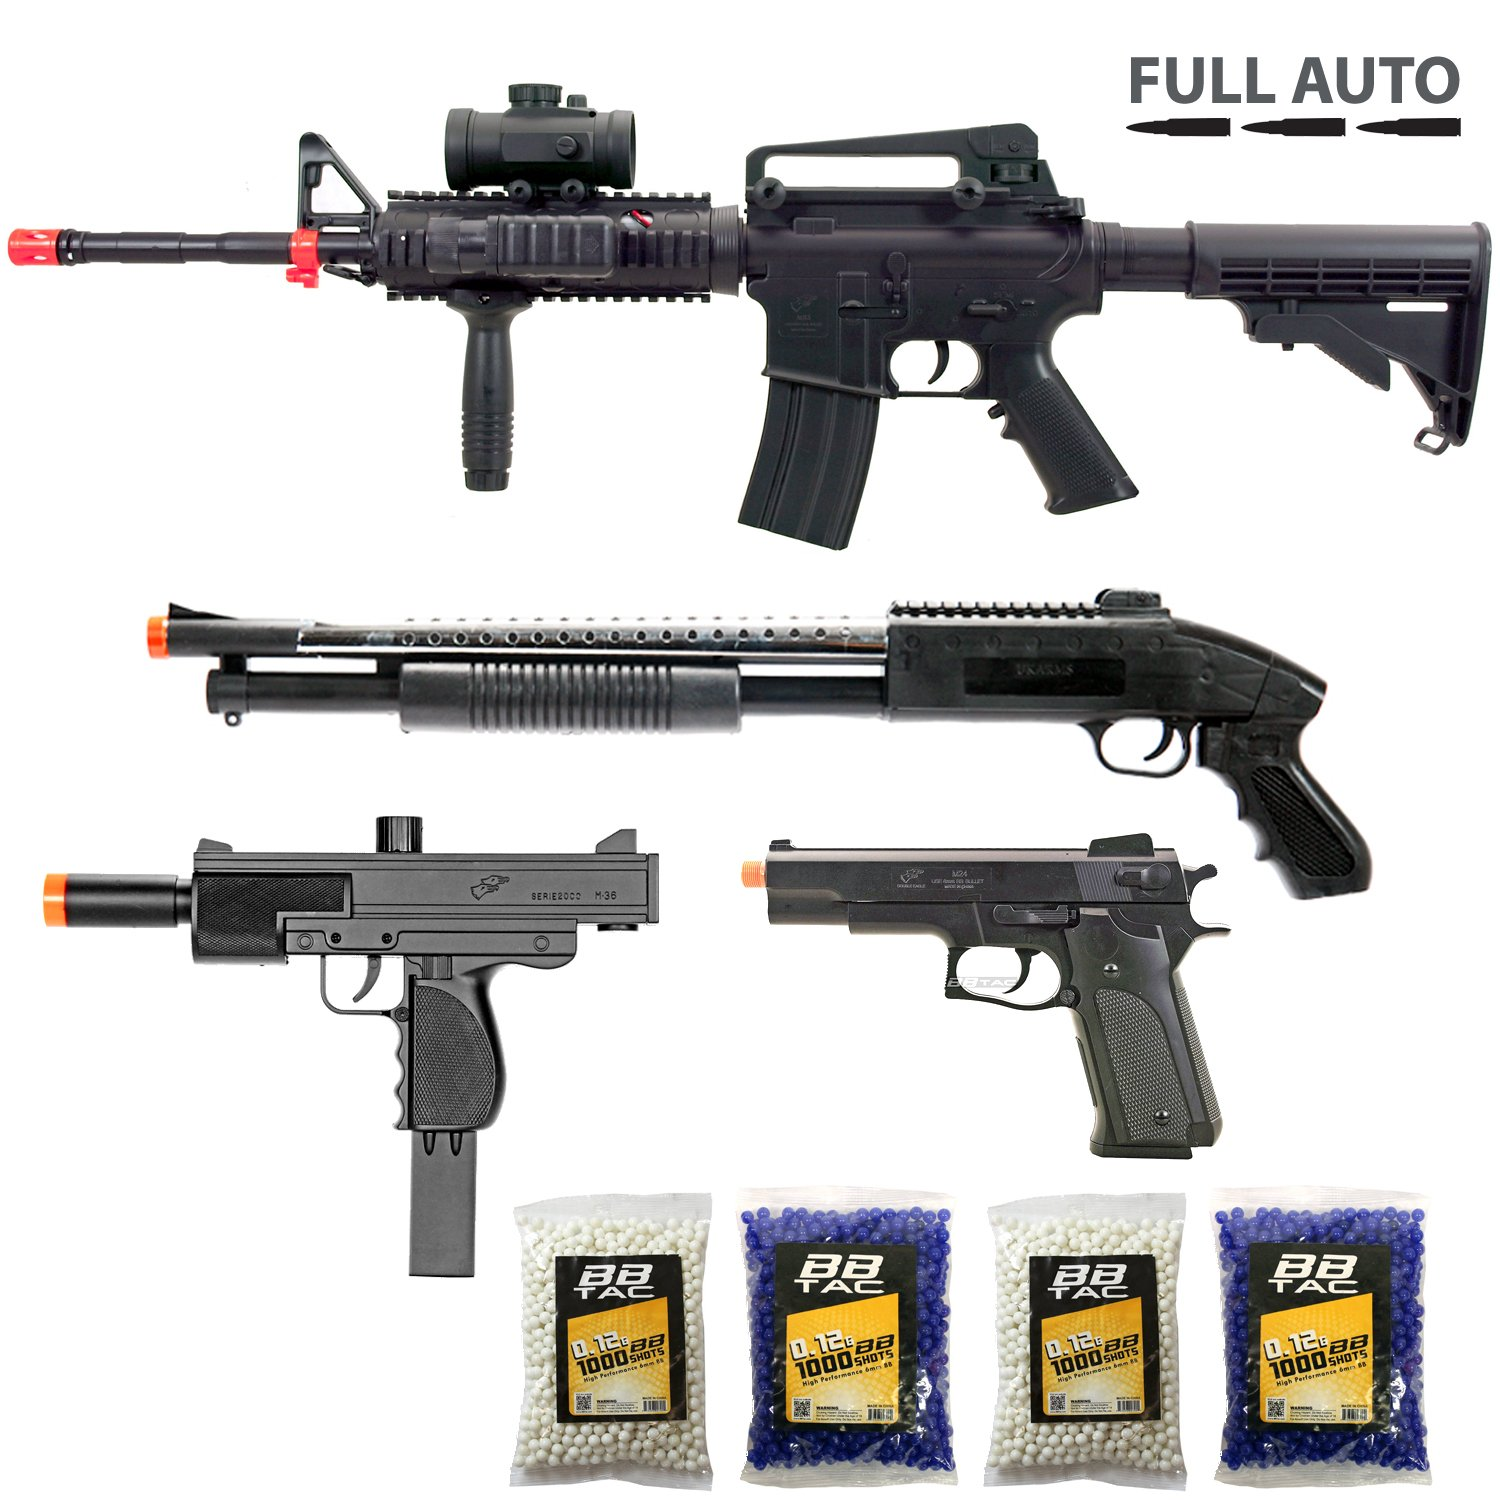 BBTac Airsoft Gun Package - Police Response Team Collection of 4 Airsoft Guns - Full Auto AEG Electric Rifle, Shotgun, SMG and Pistol, 4000 BB Pellets, Great for Starter Pack Game Play by BBTac